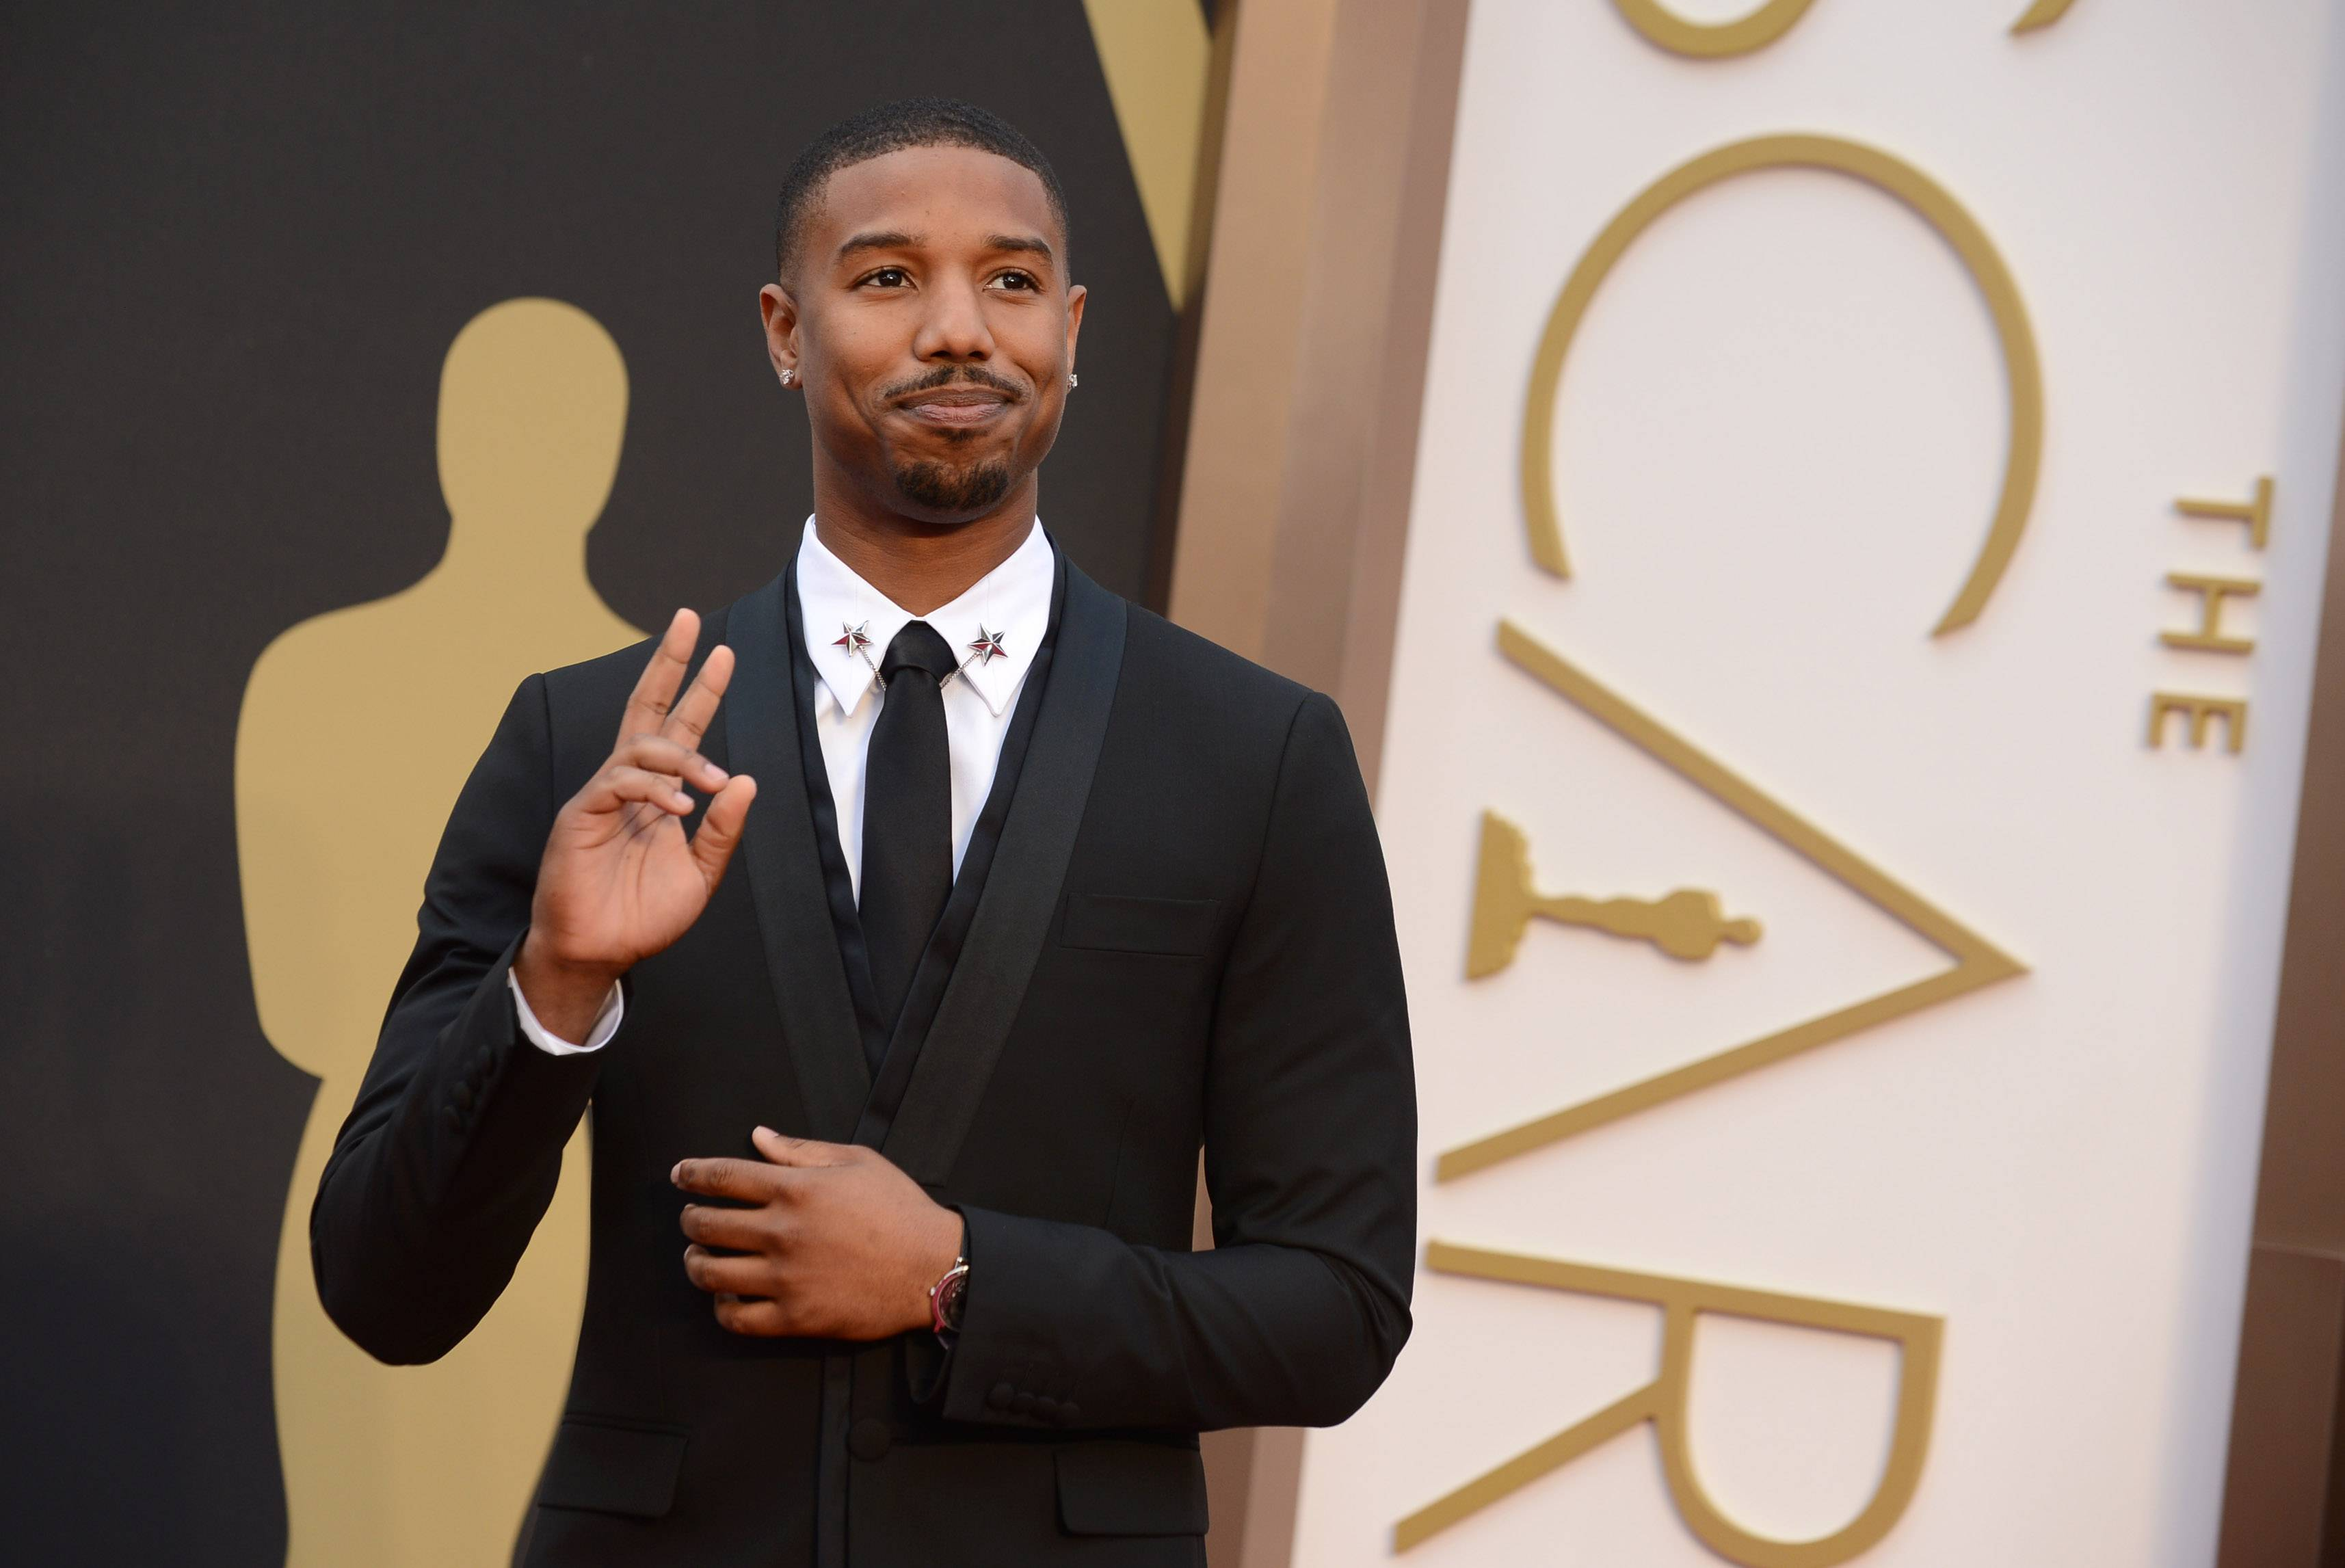 """Fruitvale Station"" star Michael B. Jordan poses for the press line Sunday at the Oscars in Los Angeles."